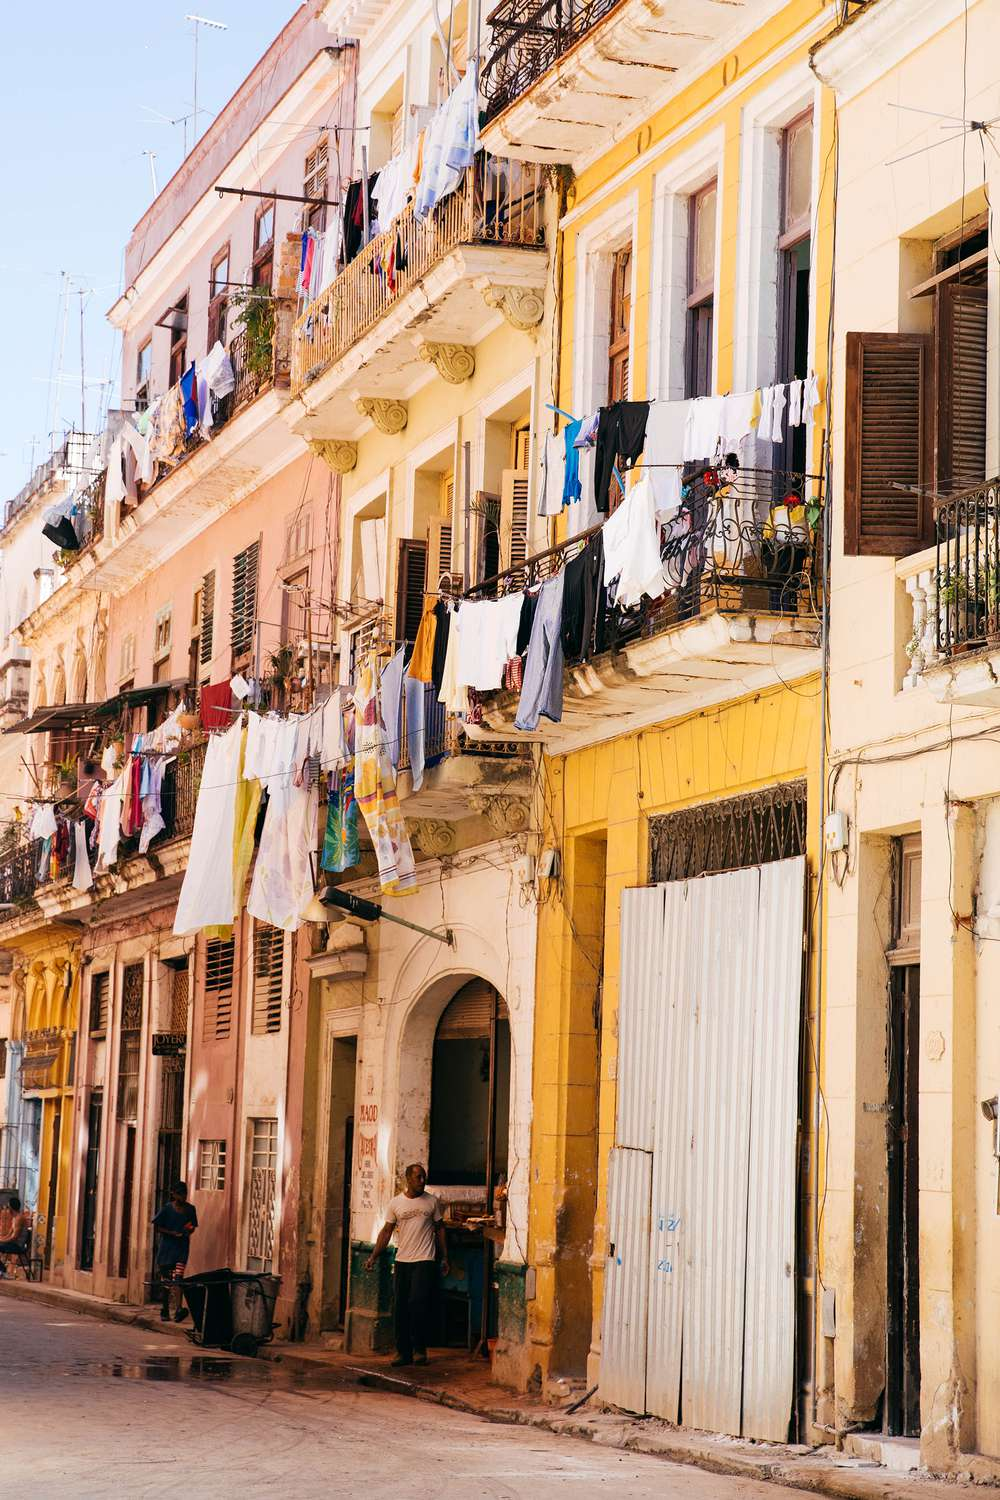 Laundry hanging in city street Cuba